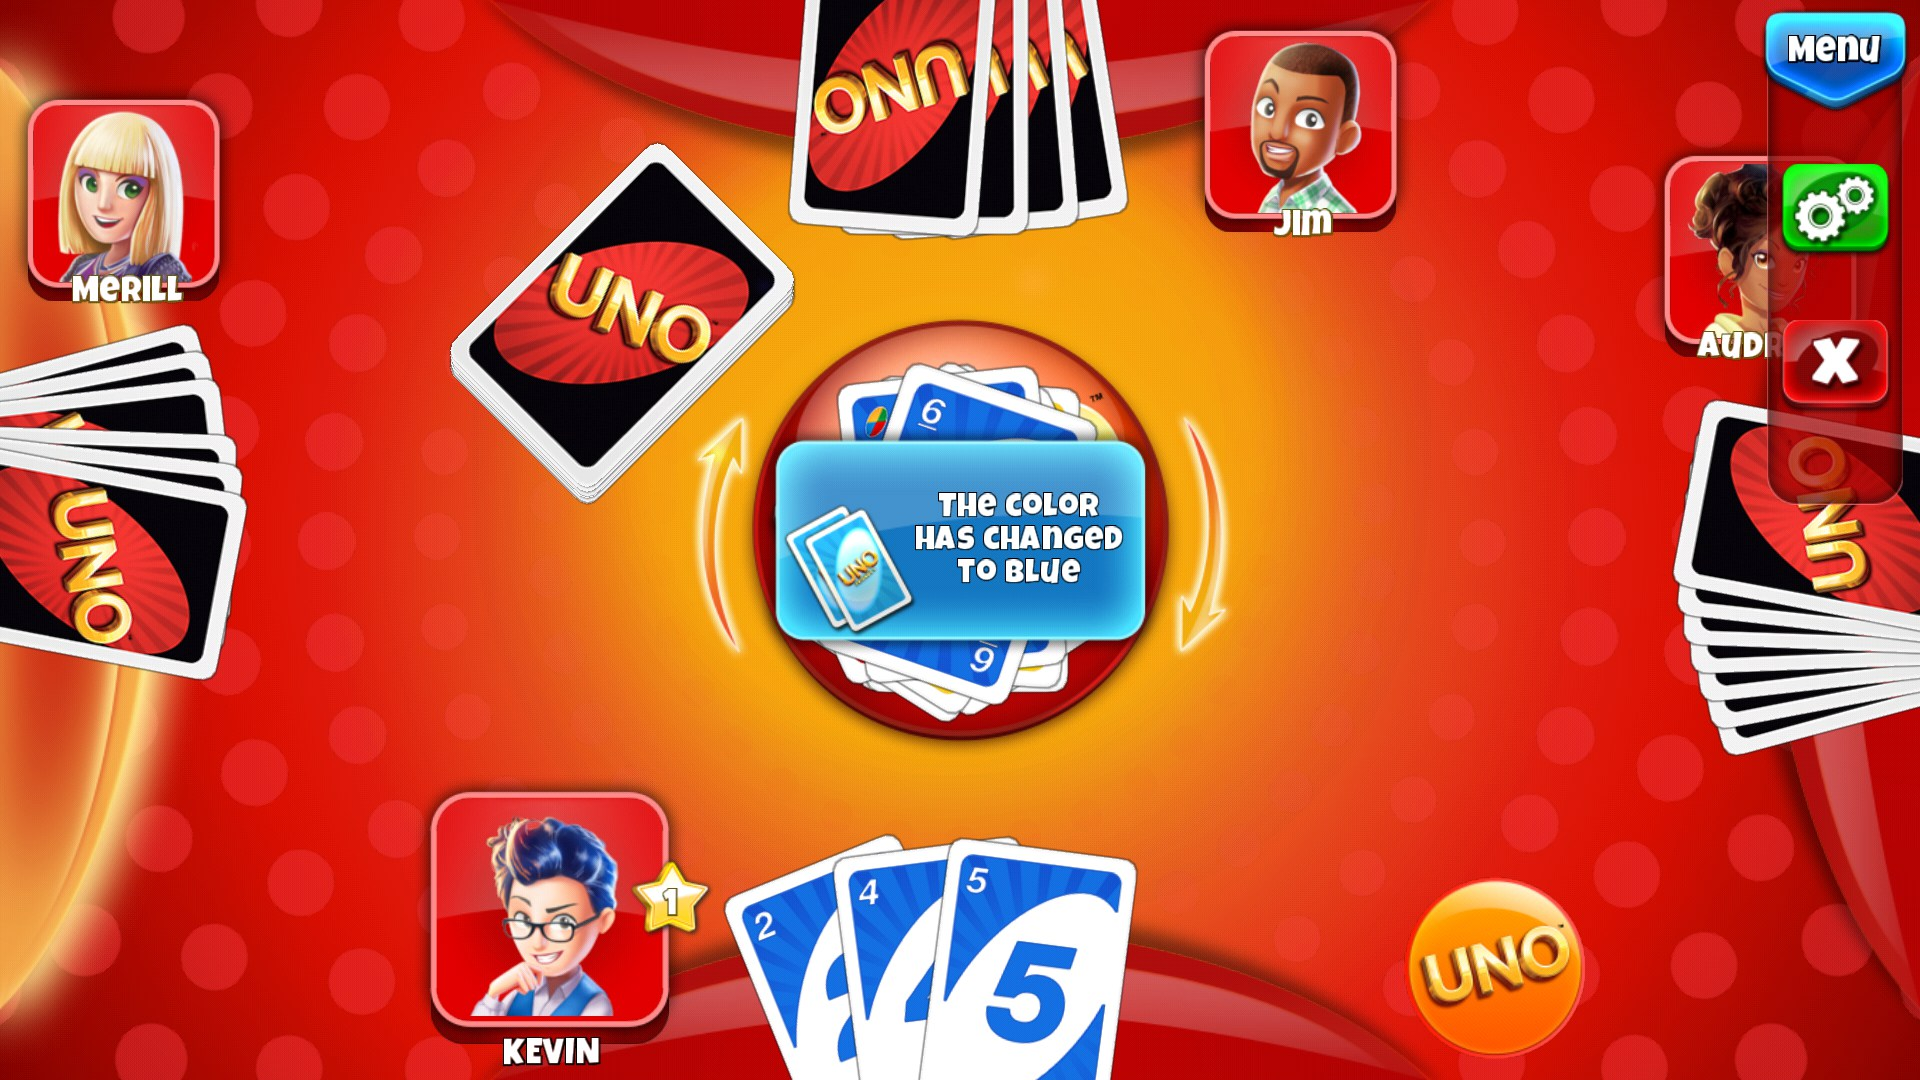 Uno Friends Games For Android 2018 Free Download Uno Friends Online Version Of The Popular Card Game Uno